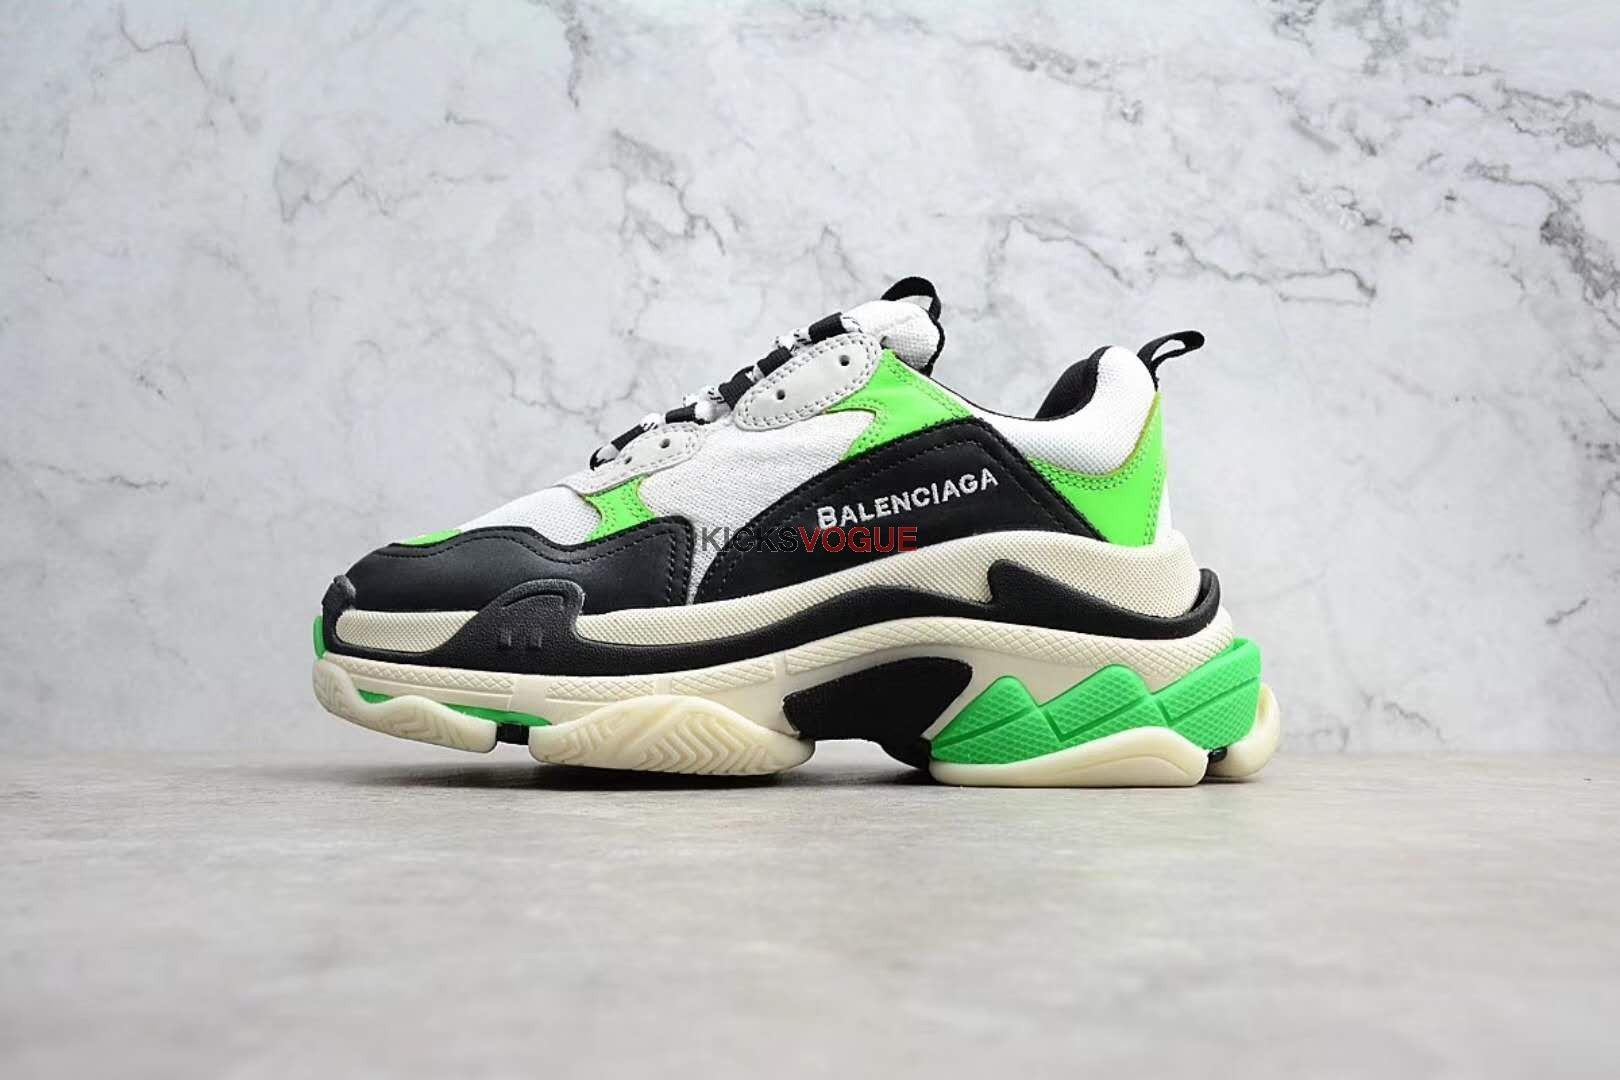 7f401071c9220 Balenciaga Triple S Mr. Porter Neon Green